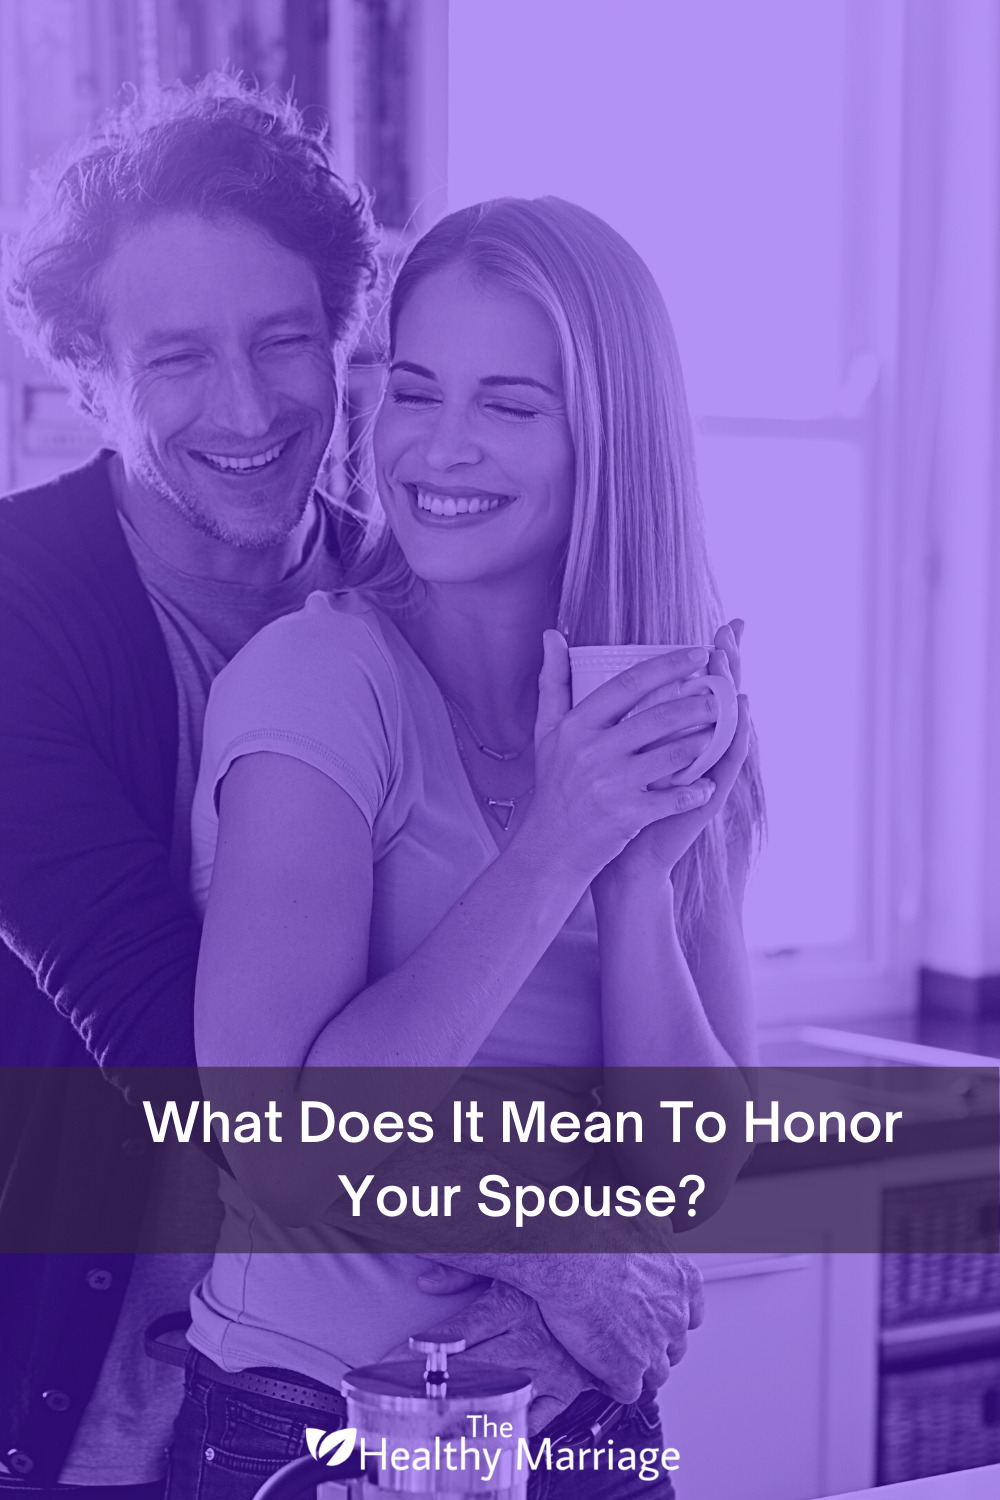 What does it mean to honor your spouse?